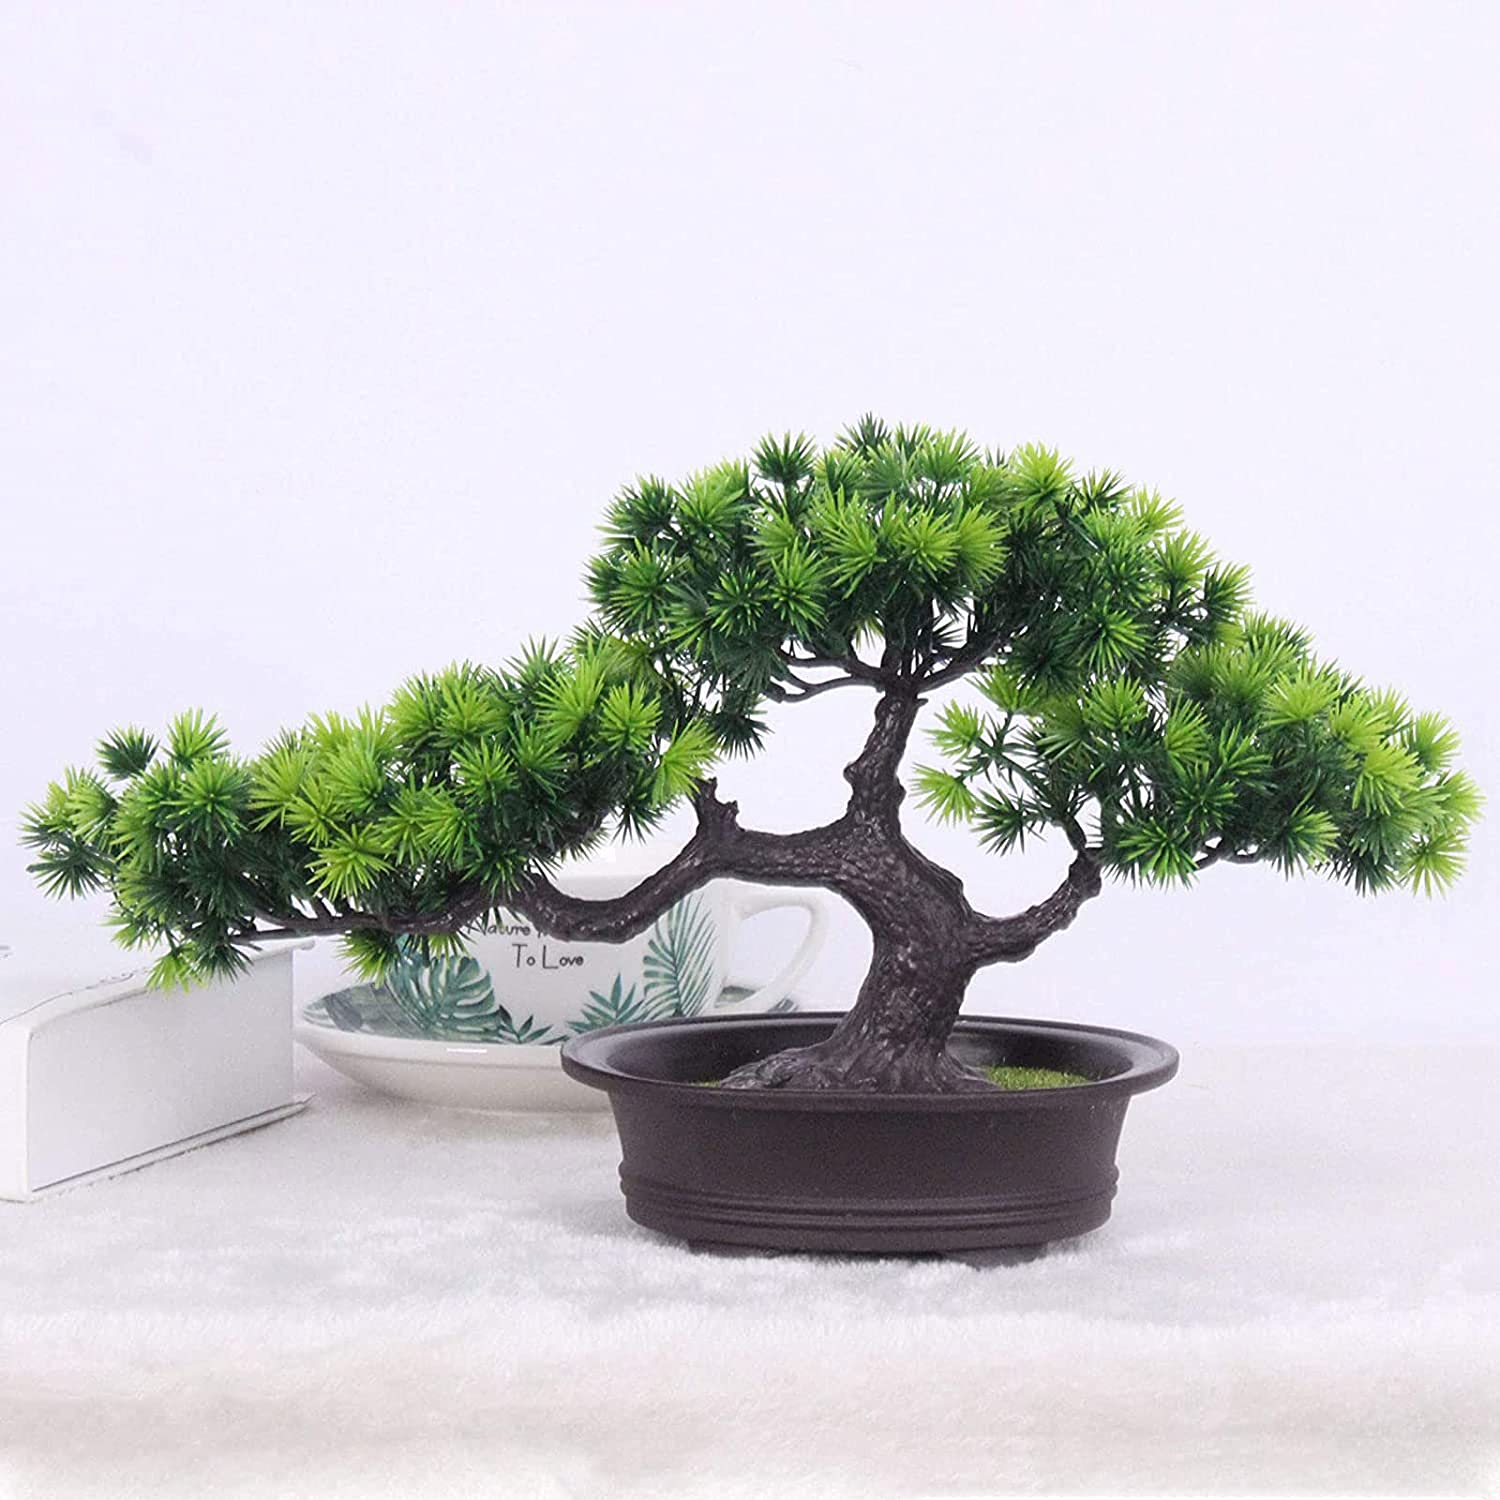 Artificial Plants Bonsai Award Welcoming Pine Tree Desk Pot Si Display A surprise price is realized